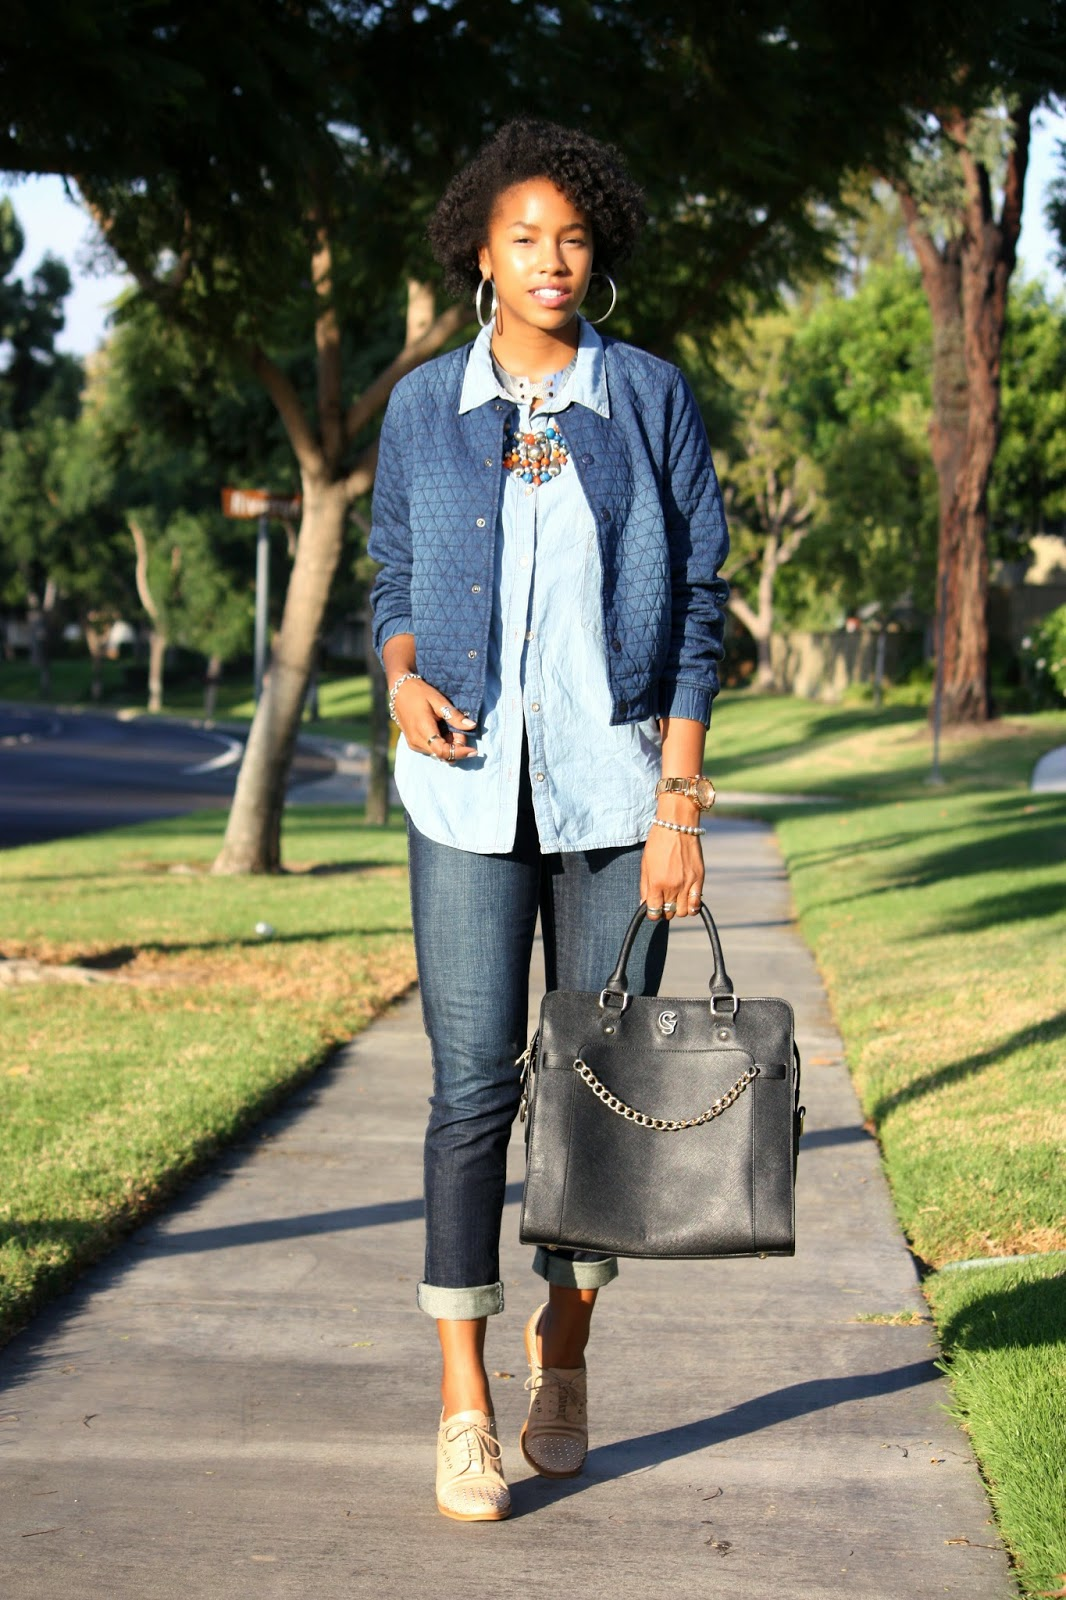 Wearing H&M denim jacket Levi's jeans Sam Edelman studded oxfords with a Gregory Sylvia bag